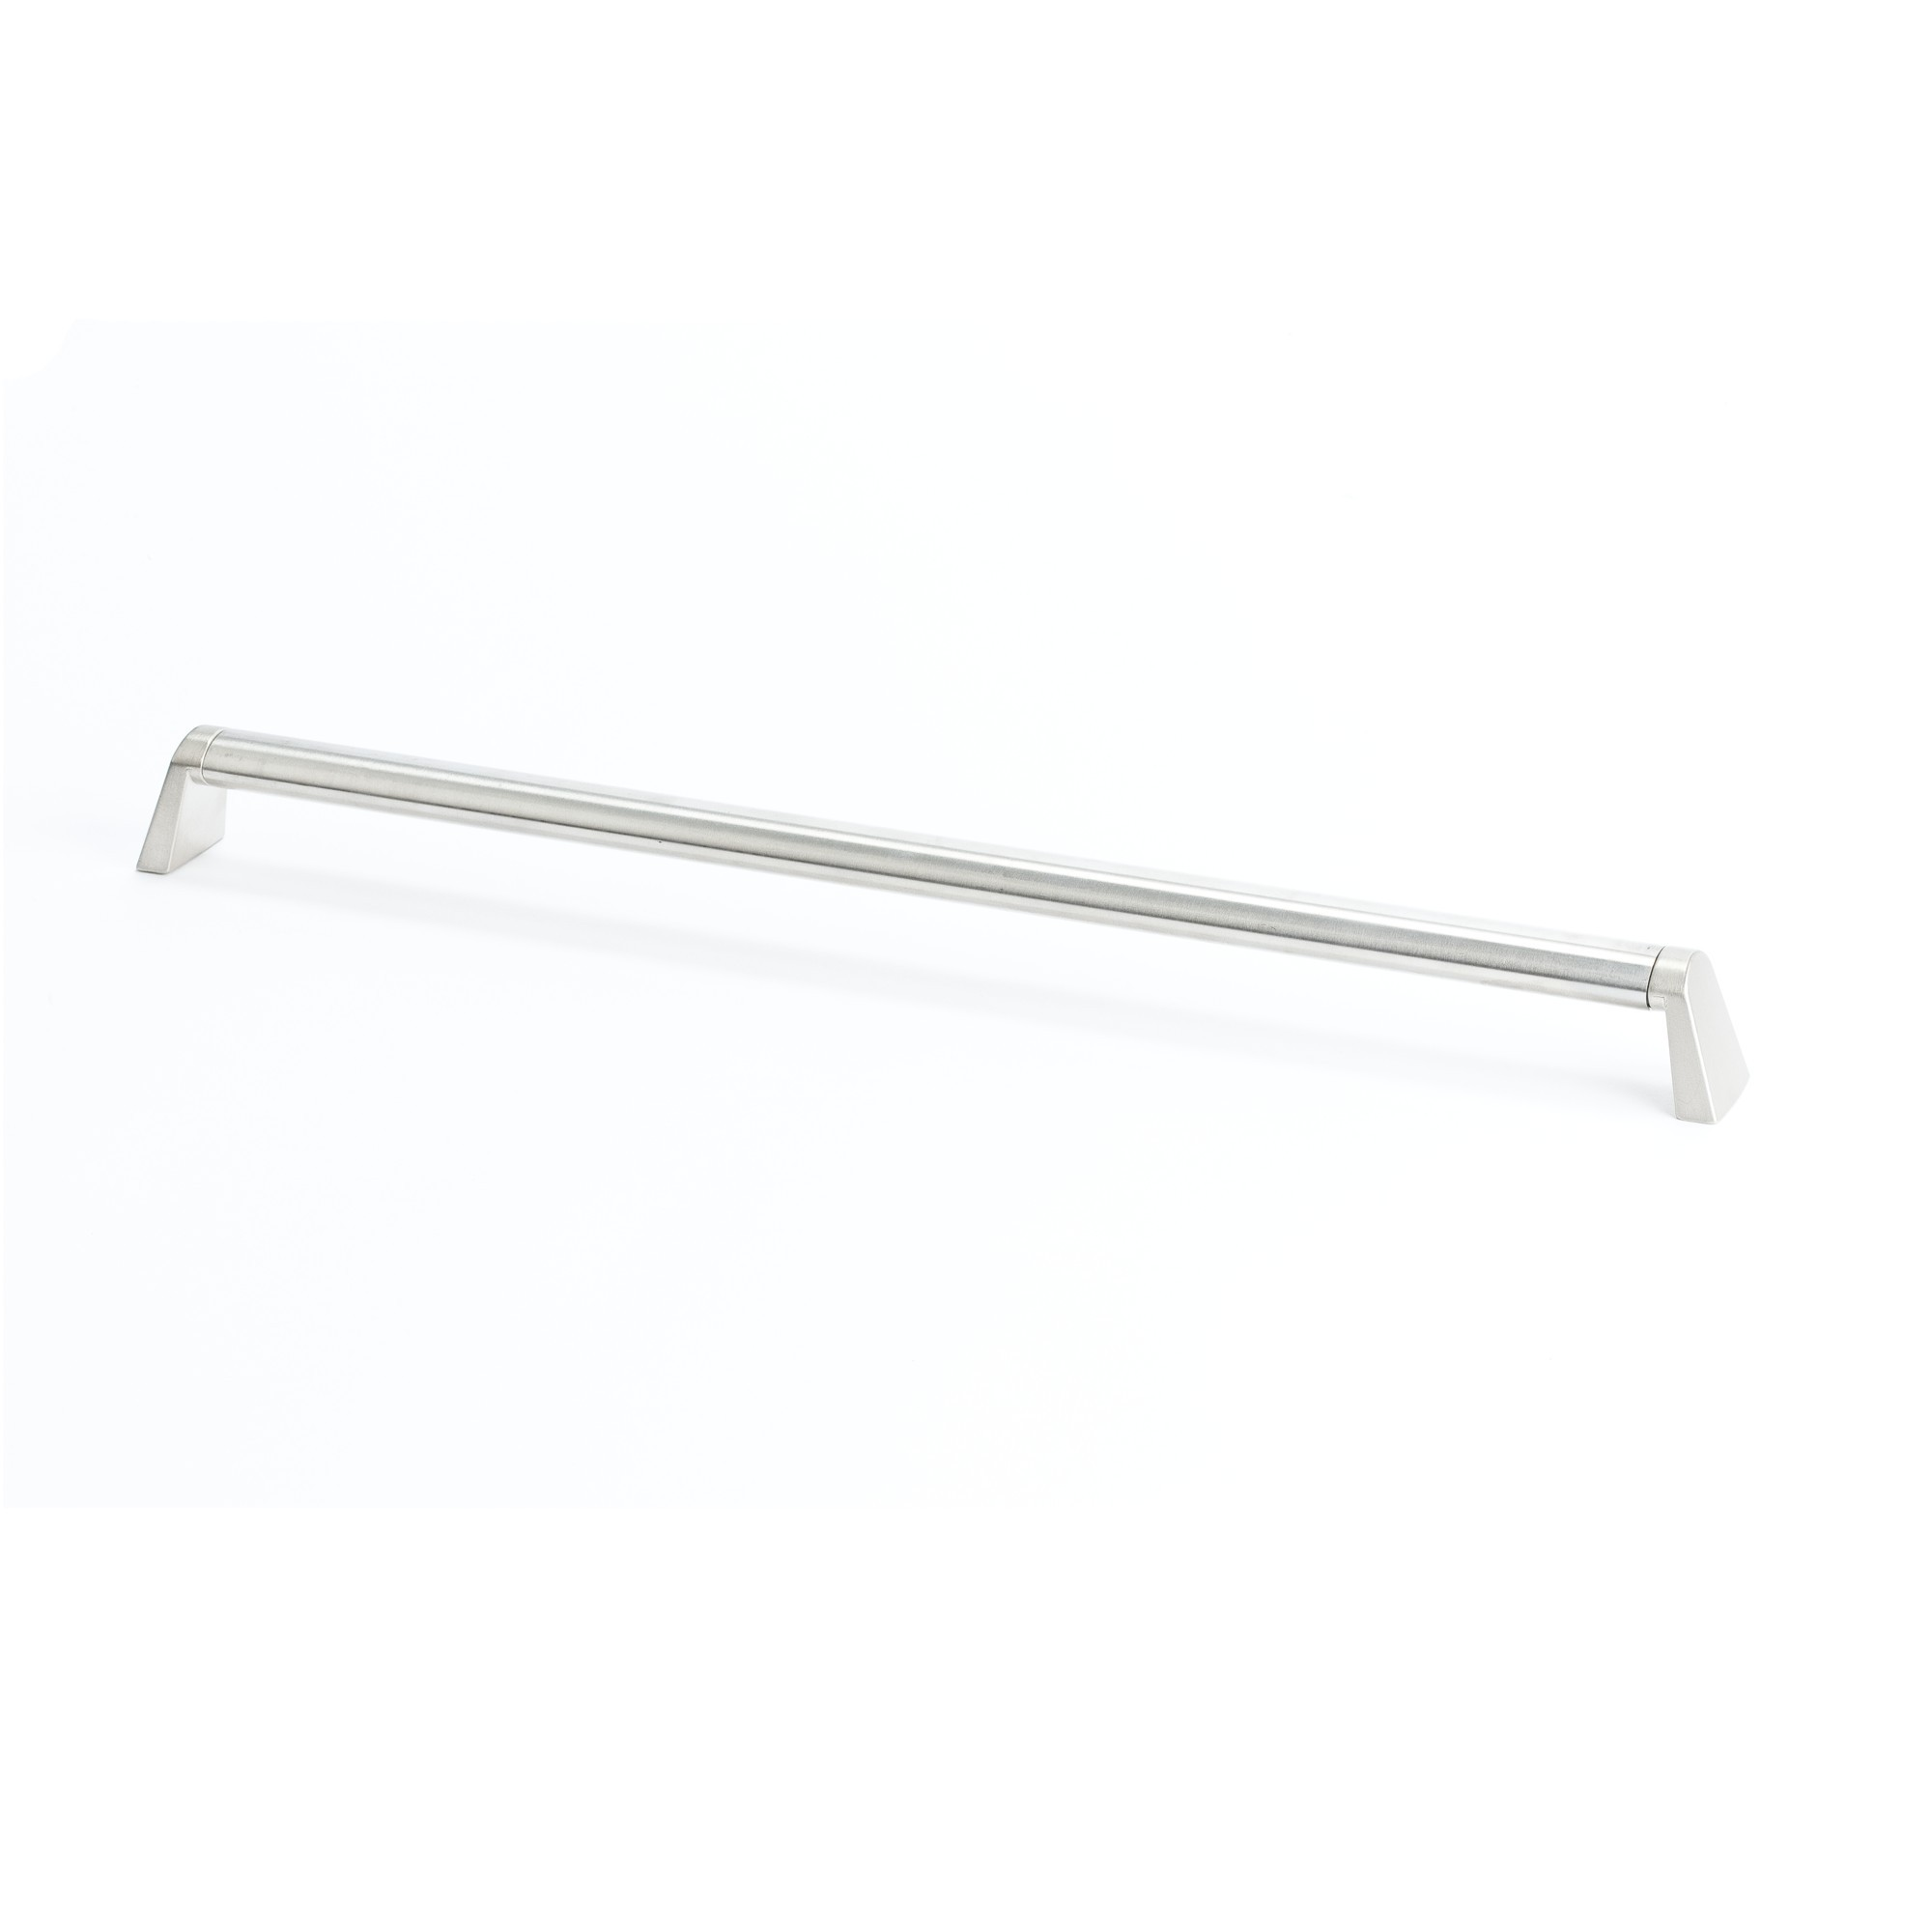 Bow Pull (Stainless Steel) - 492mm